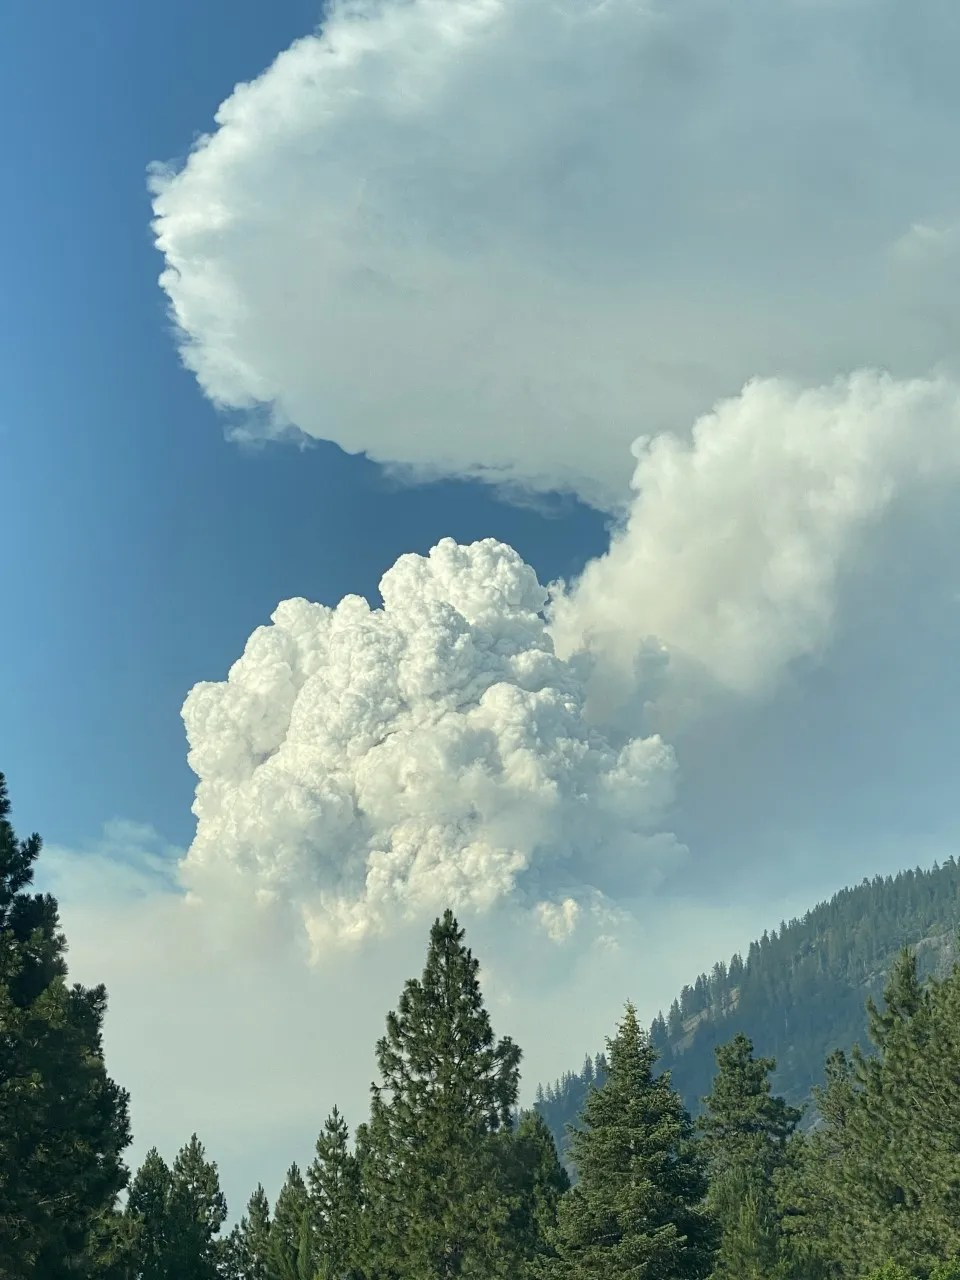 A Pyrocumulus cloud rises above Black Butte from the Lava Fire on Wednesday evening, June 30, 2021.